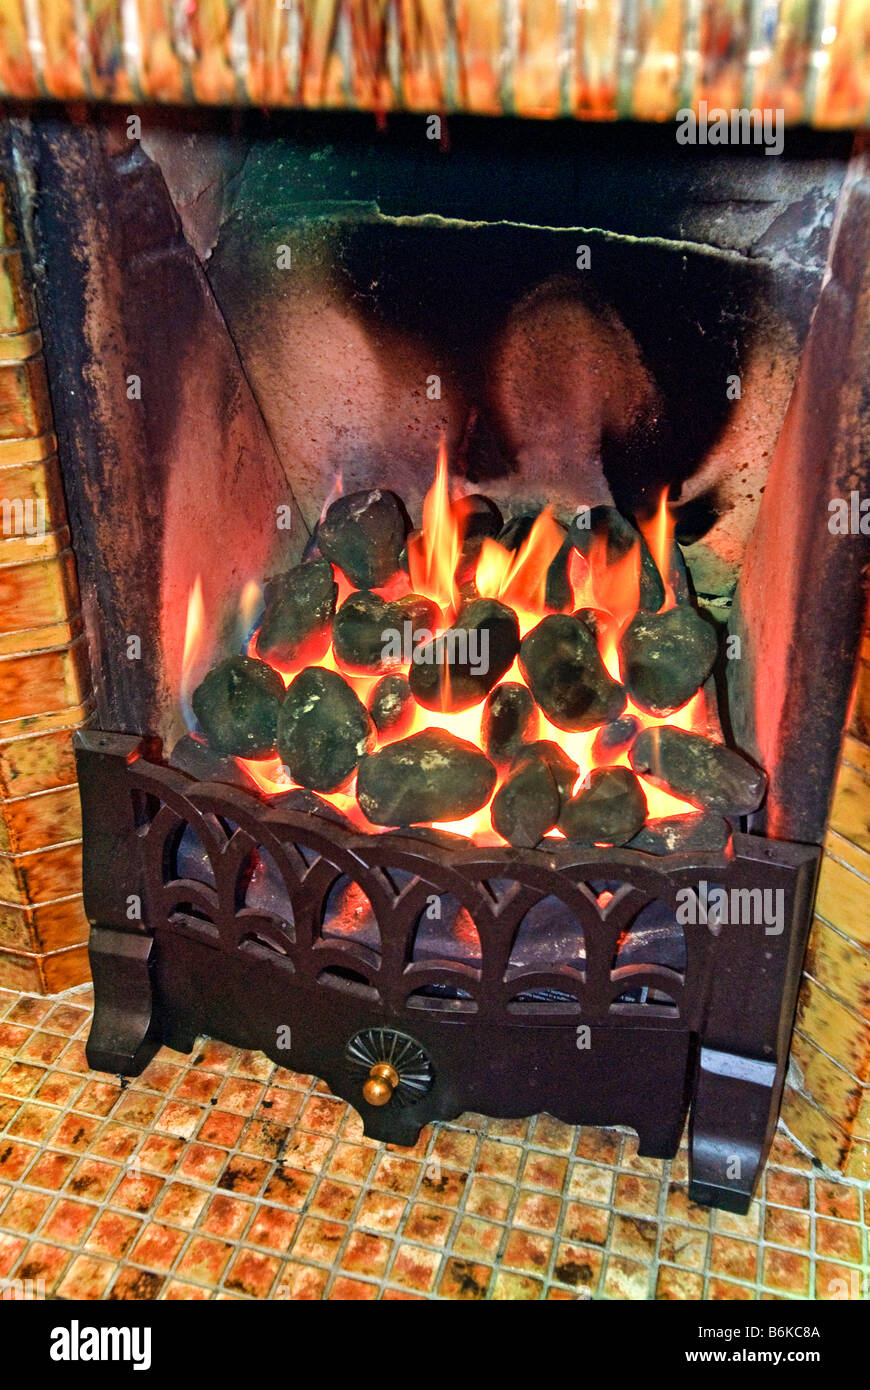 coal fire grate fireplace stock photos u0026 coal fire grate fireplace